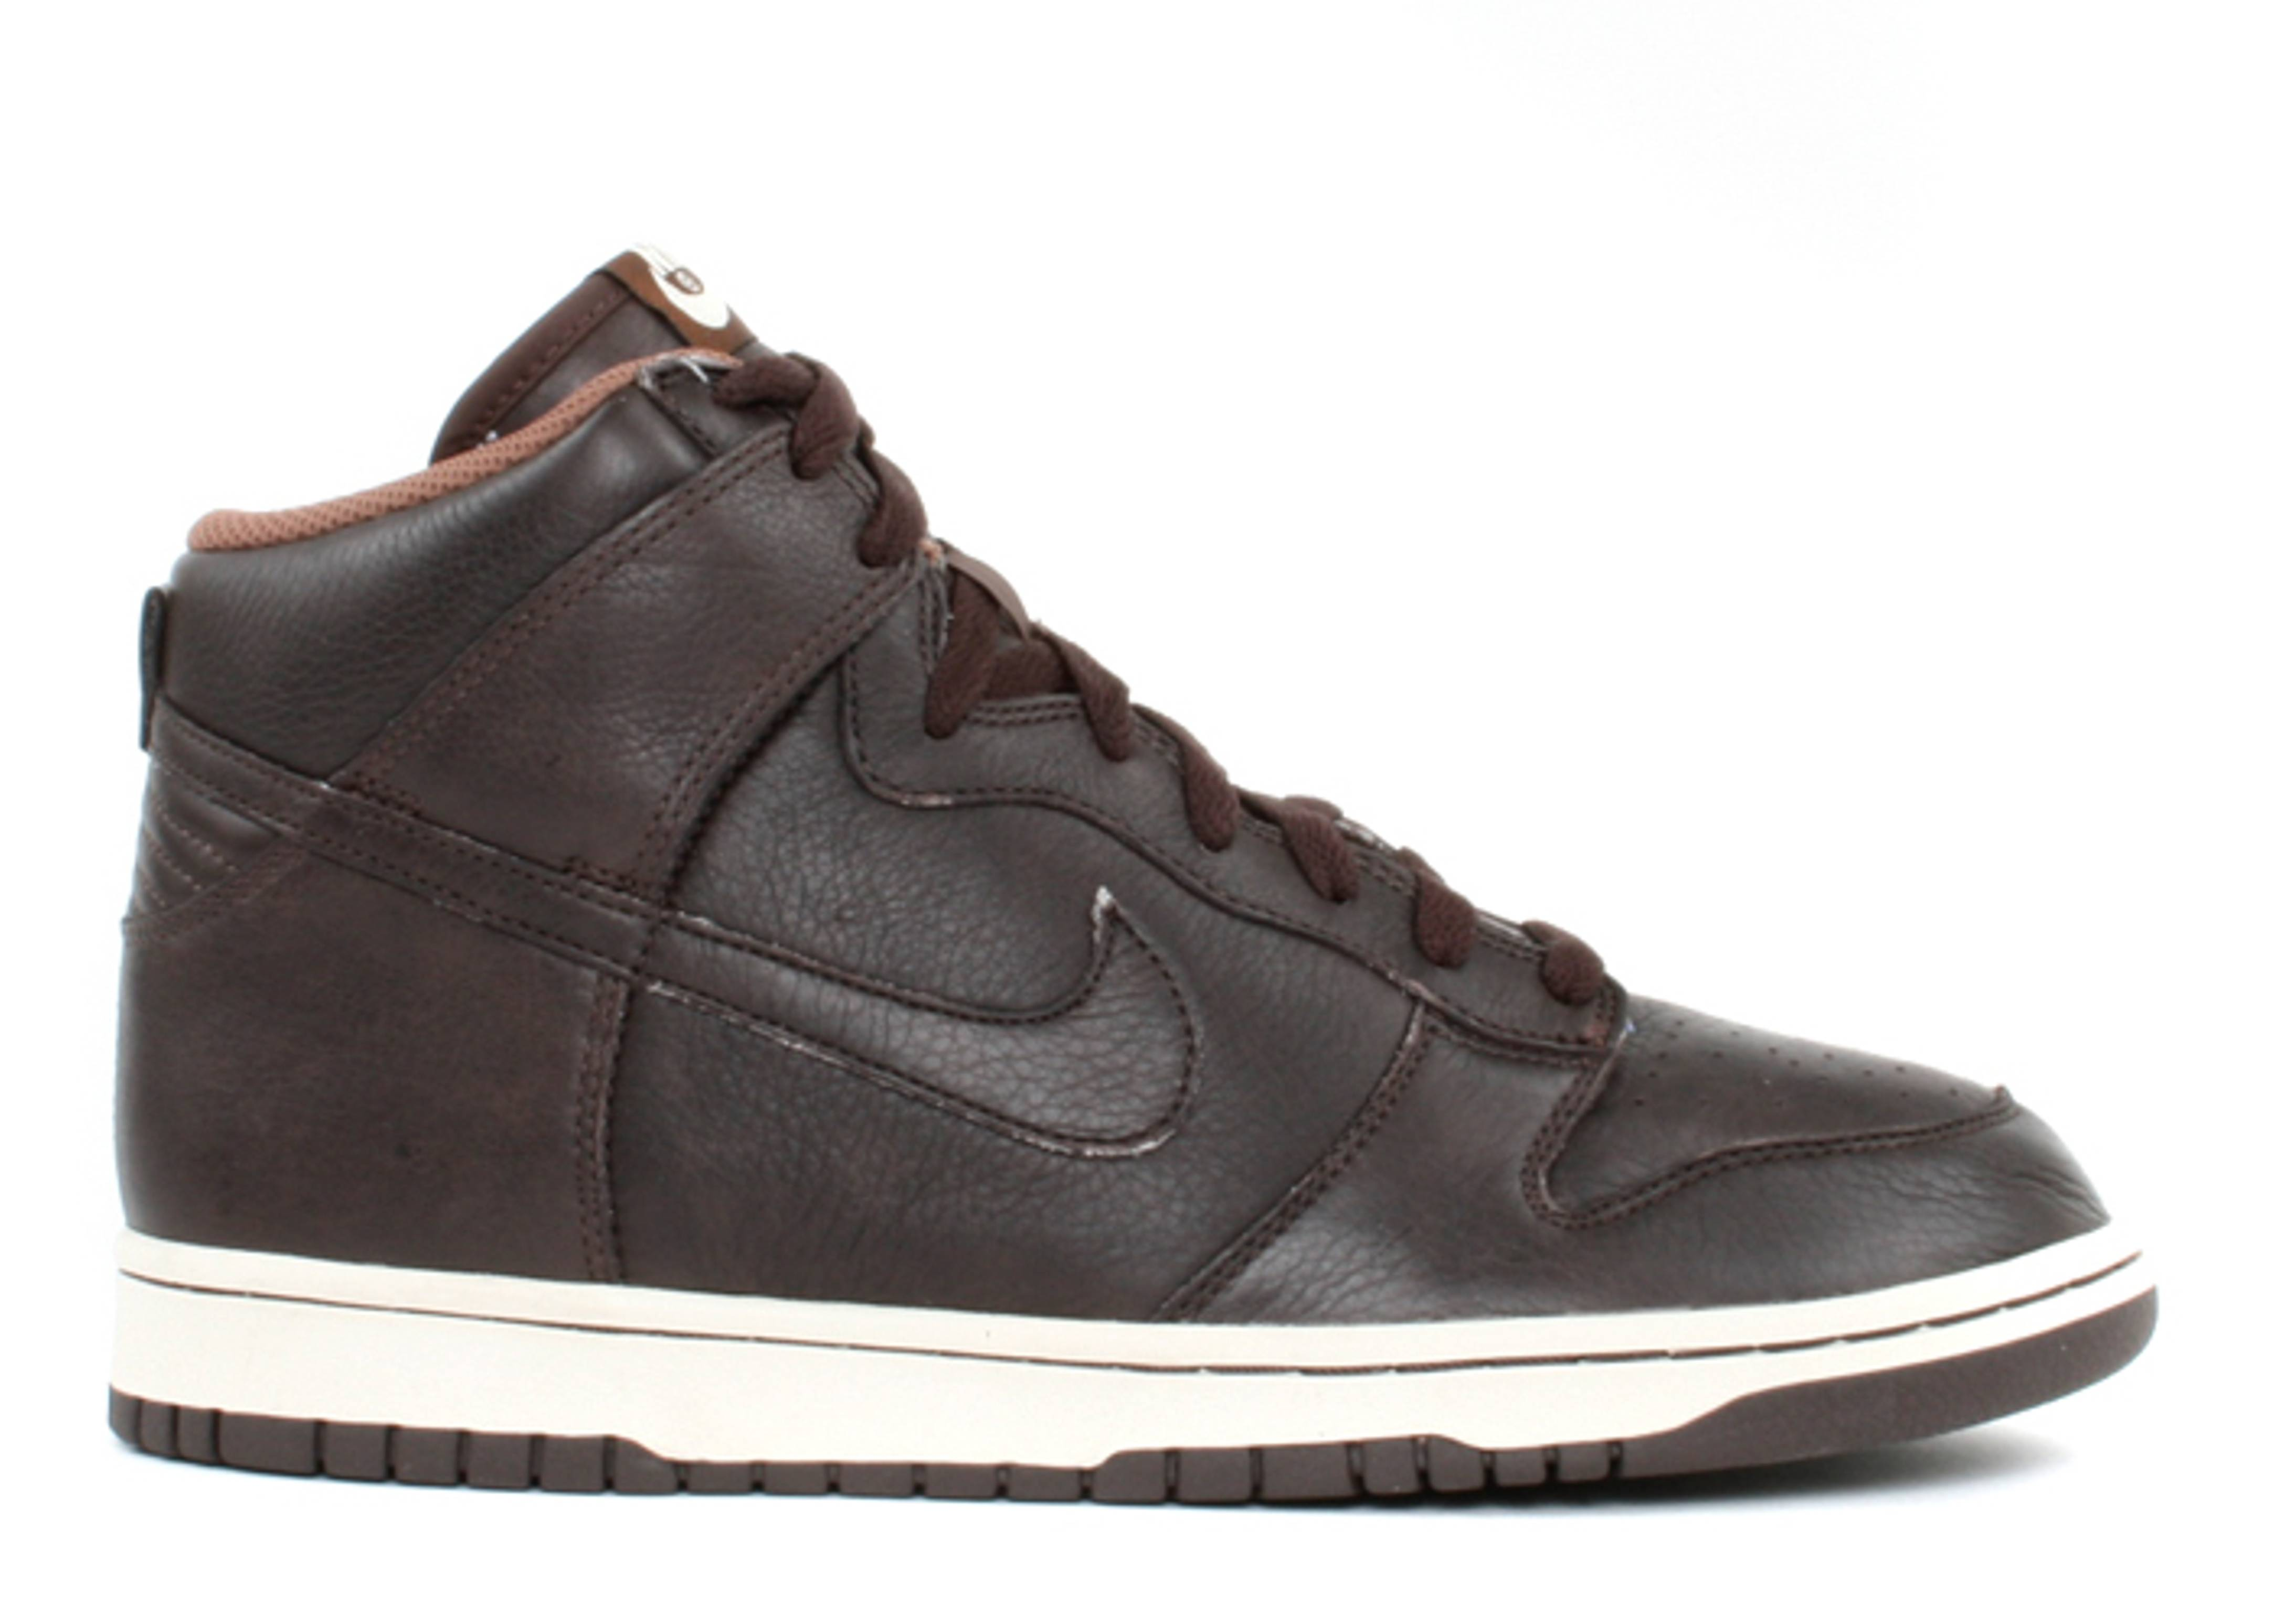 huge selection of 0f990 f9331 ... coupon code for nike. dunk high premium 43339 7077a